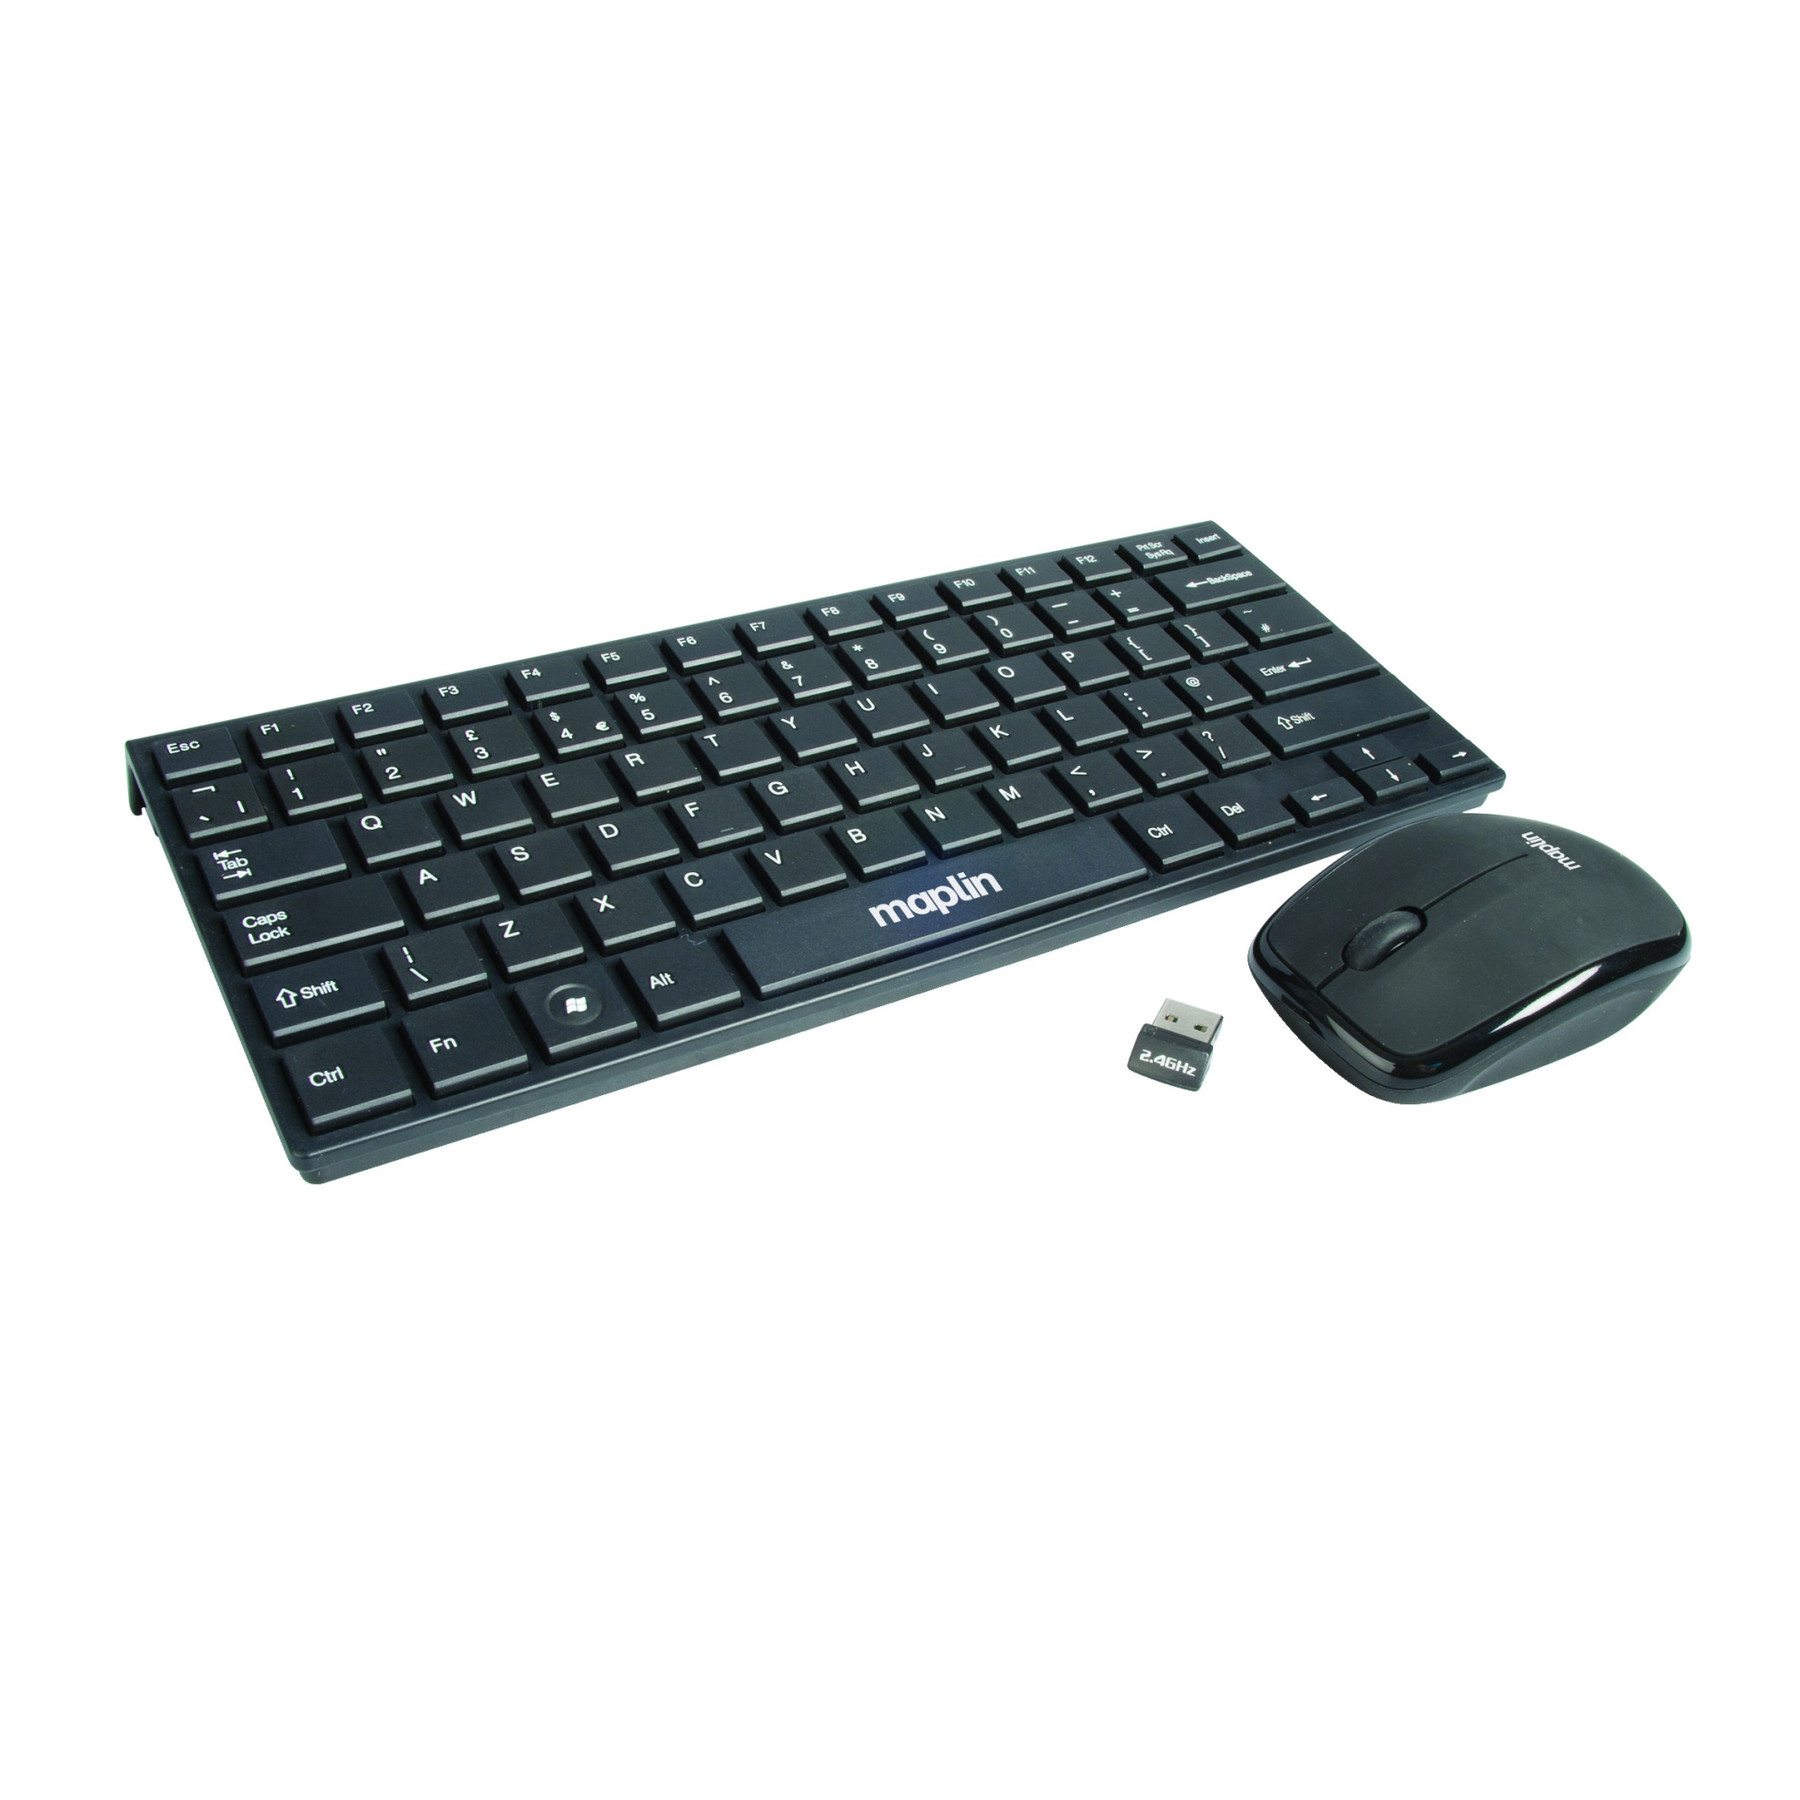 maplin super mini compact wireless keyboard and optical mouse deskset for pc new ebay. Black Bedroom Furniture Sets. Home Design Ideas